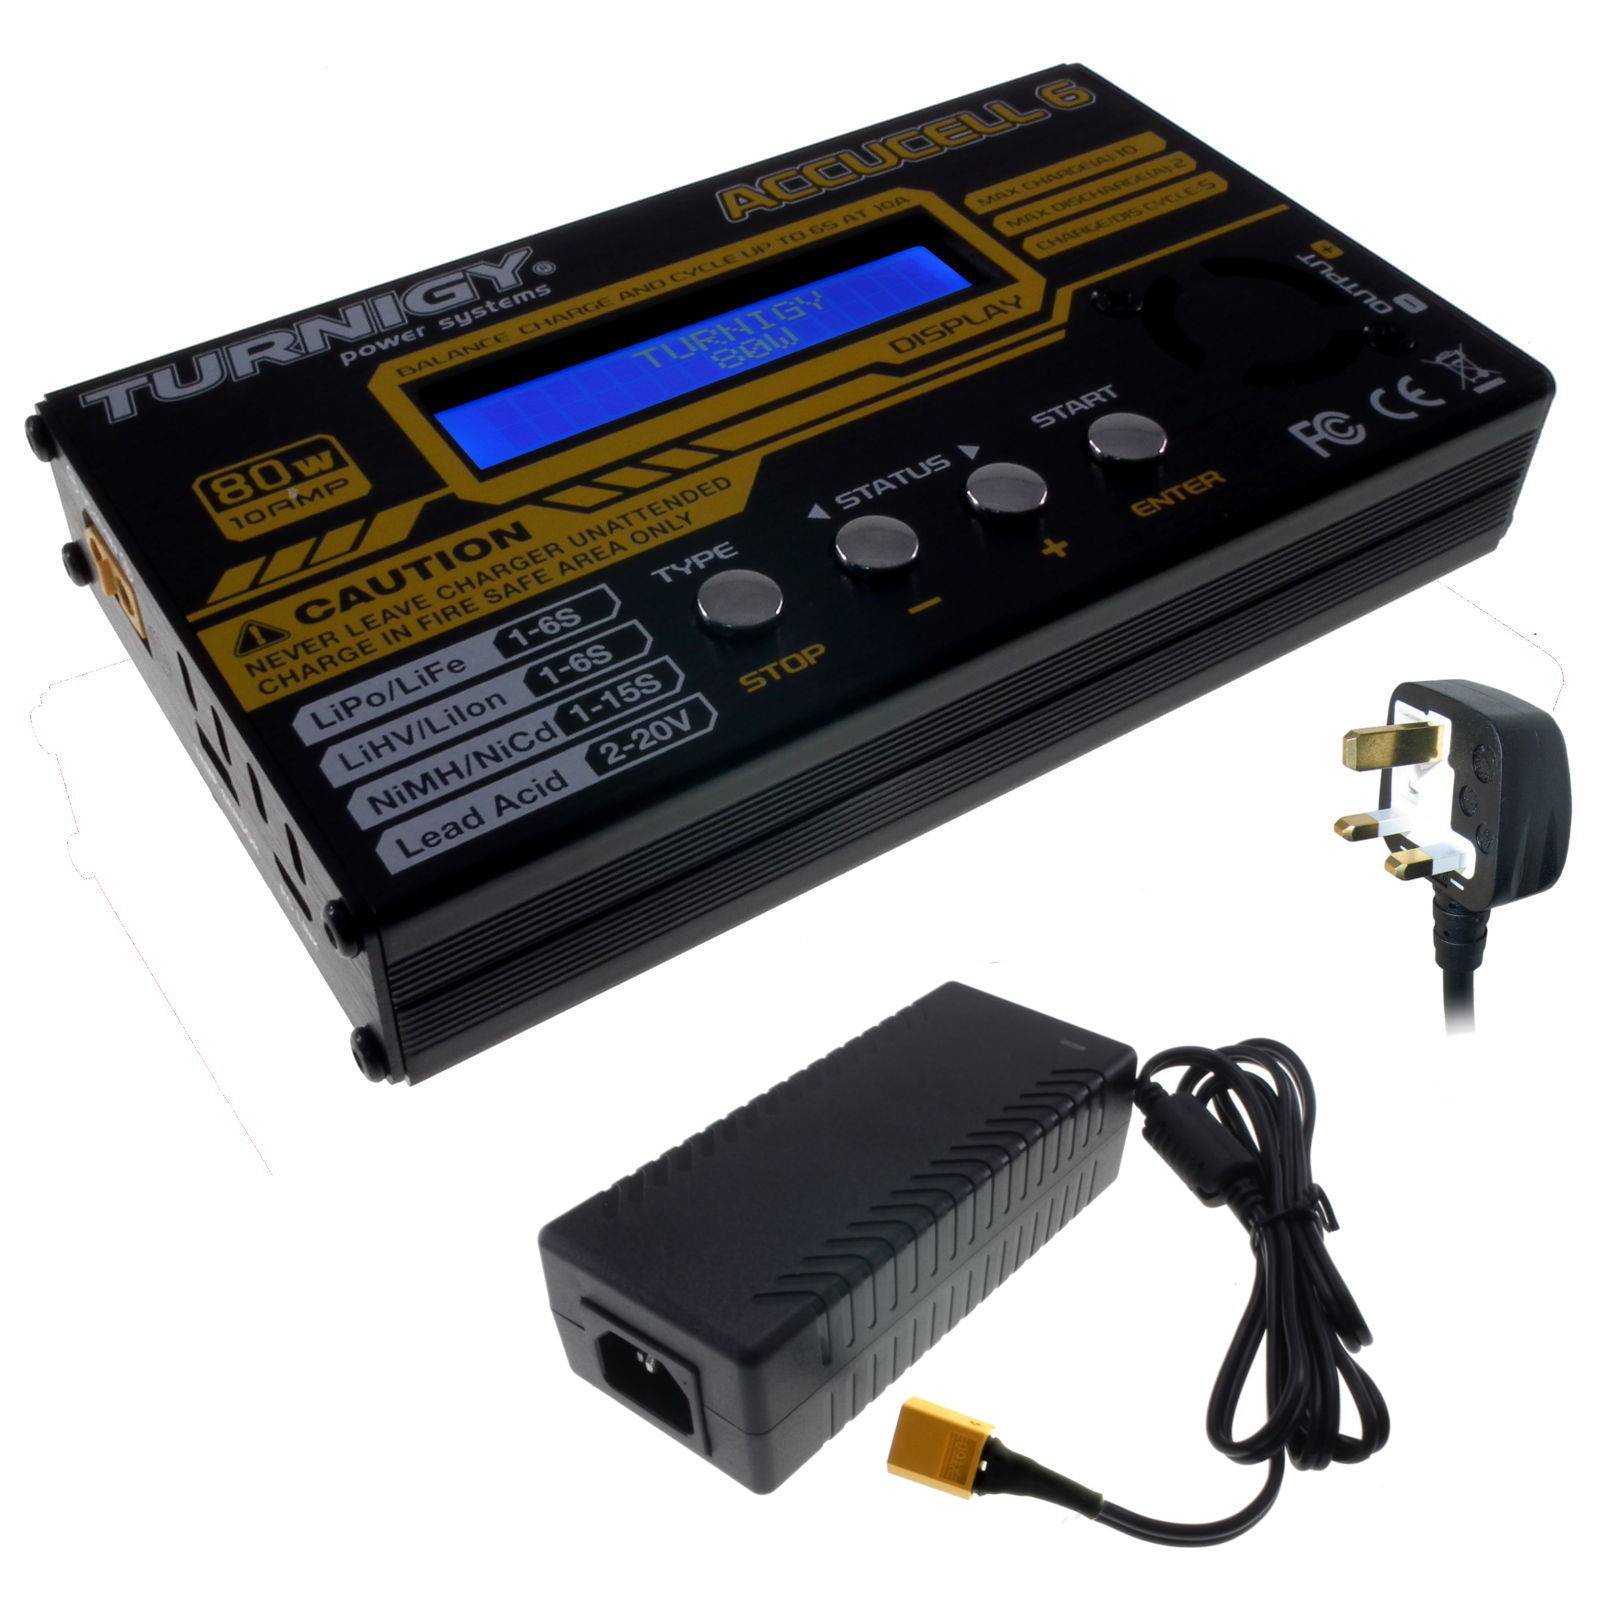 Accucel 6 80w Digital Balance Charger High Power 10a With Turnigy Receiver Controlled On Off Switch Gt R C Electronics Supply Component Shop